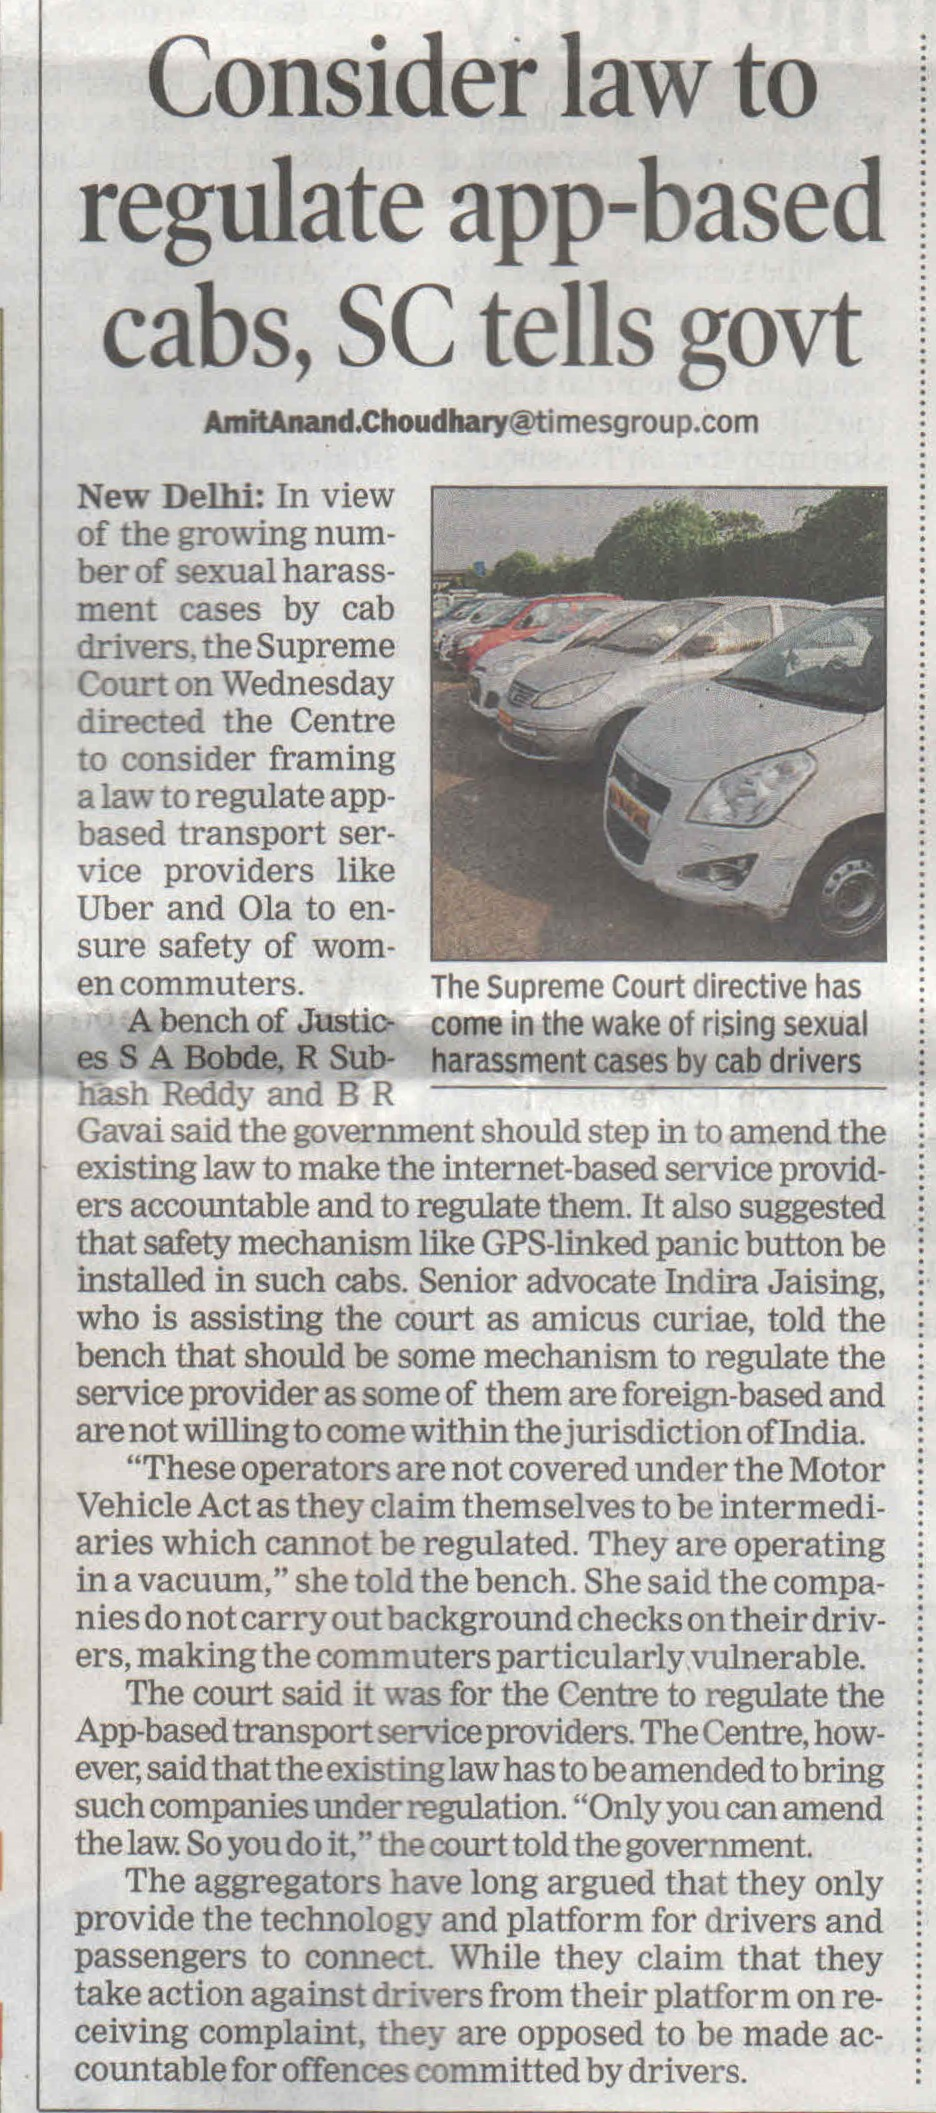 SC tells government to make law for app based cabs